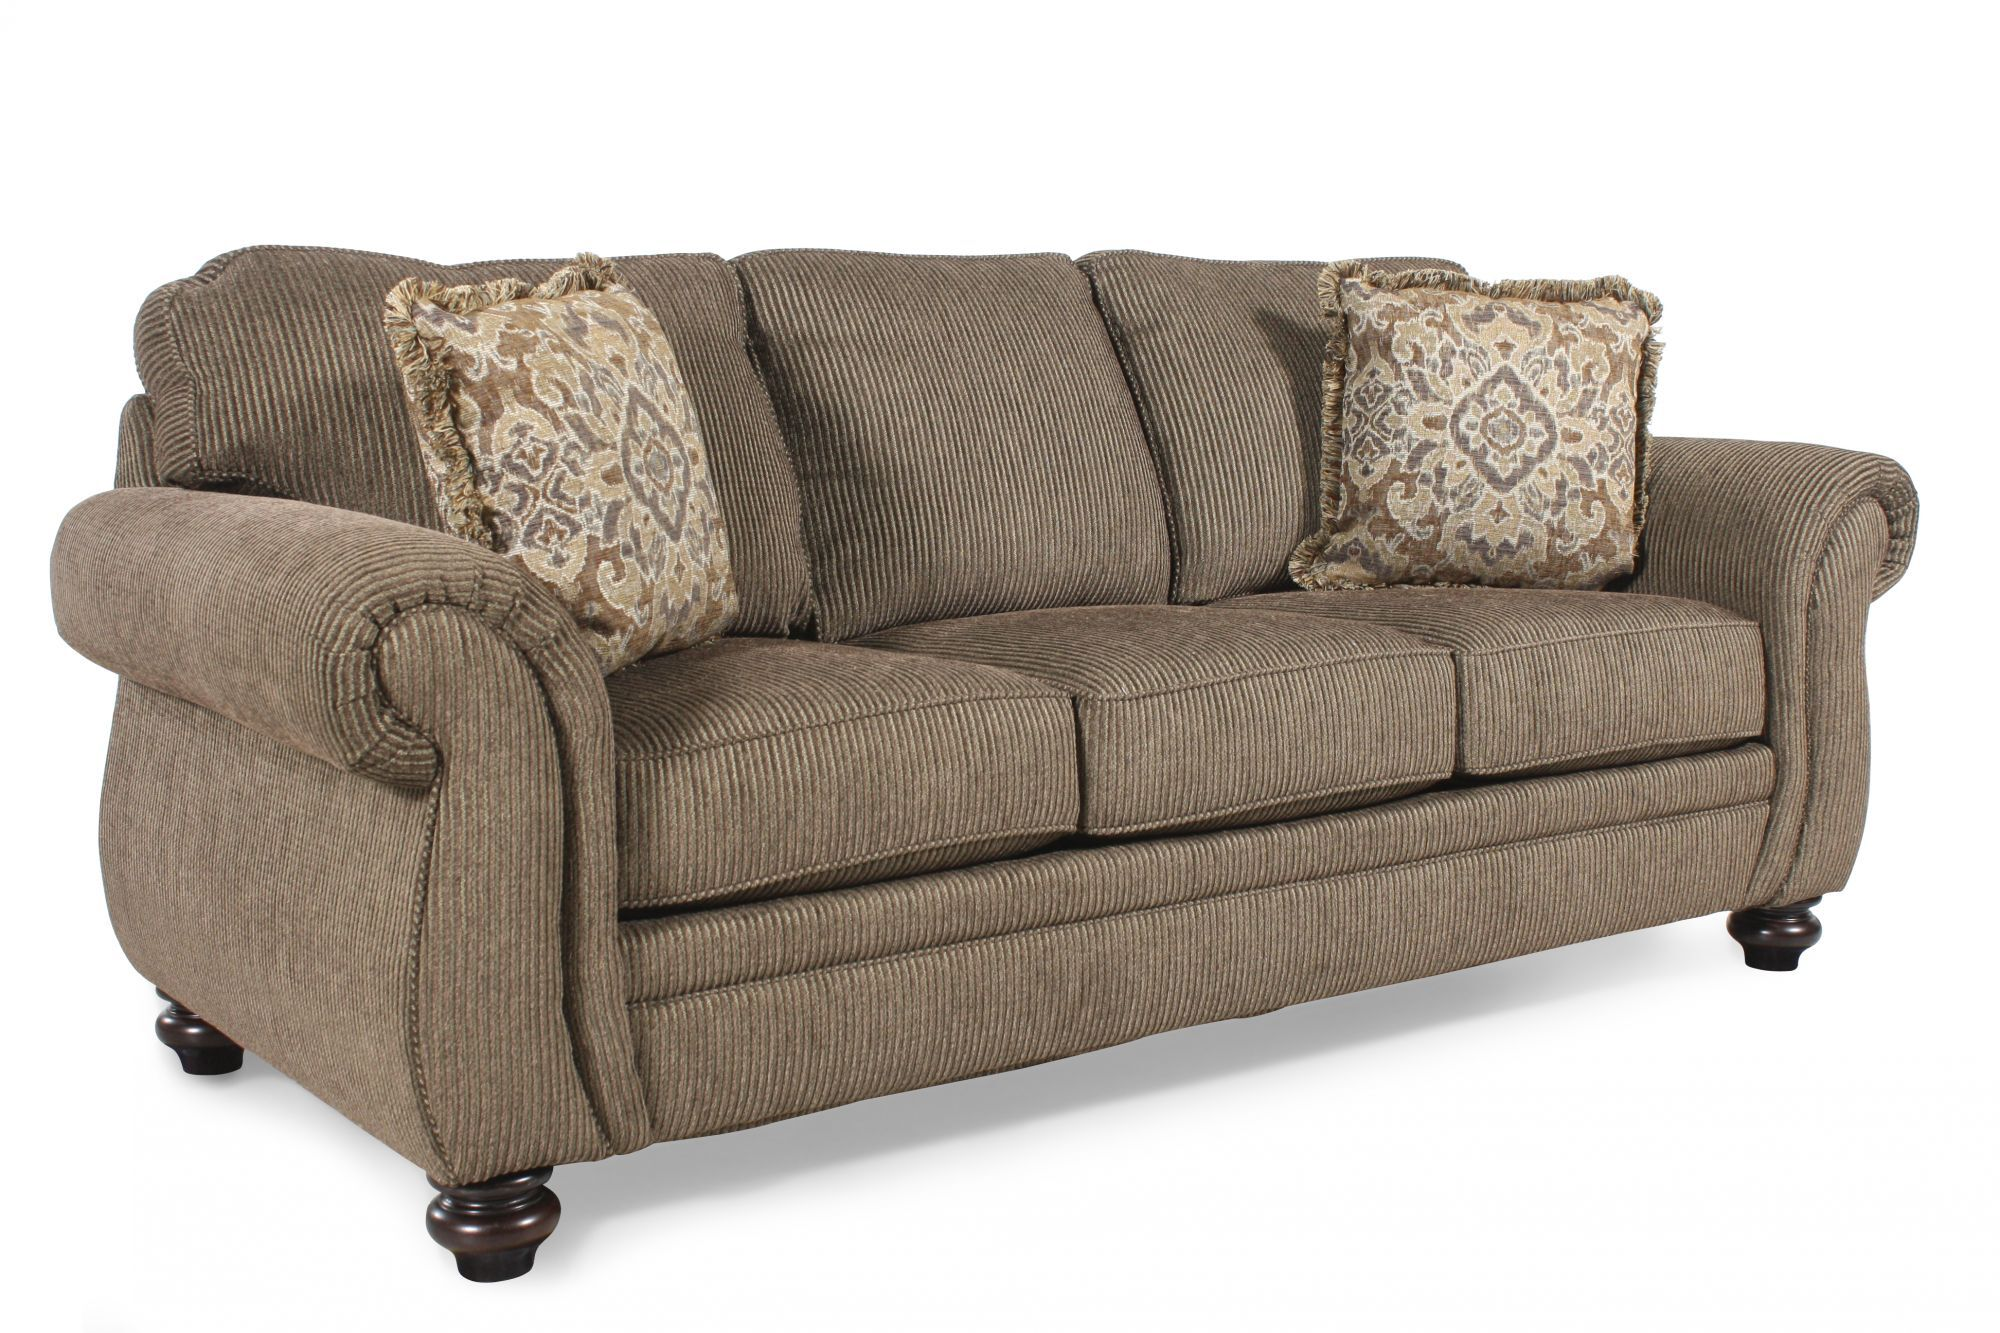 broyhill sleeper sofa store near me corduroy 89 queen in teak mathis brothers furniture